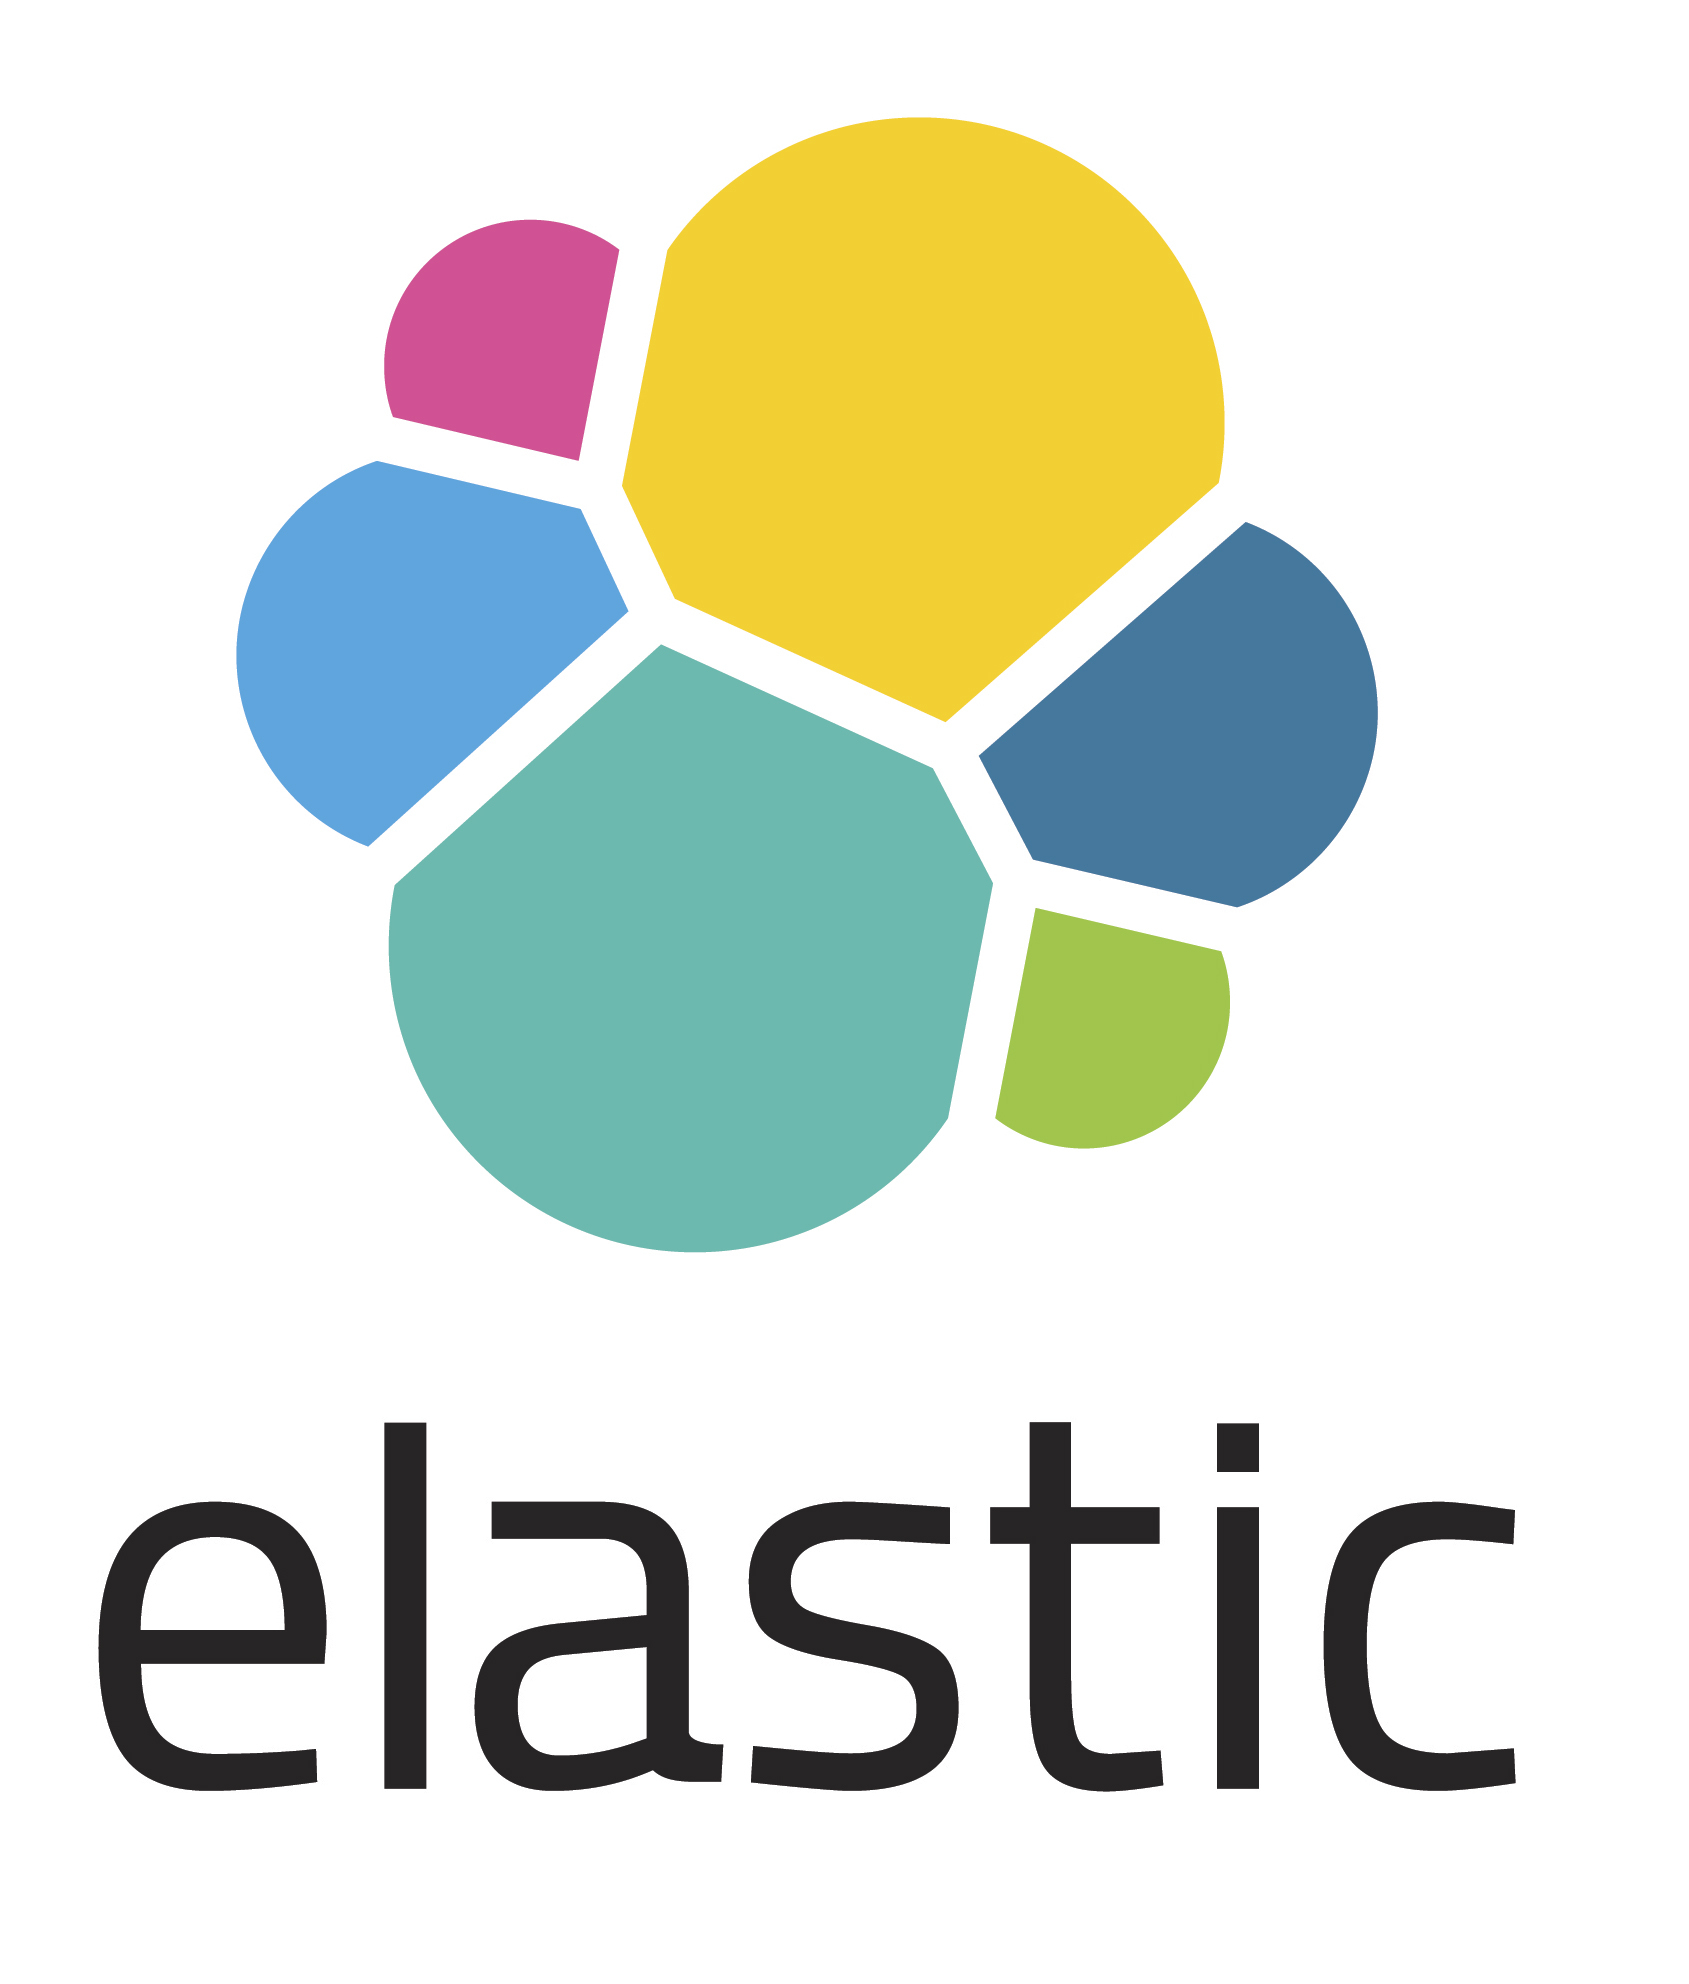 Elastic Cloud Enterprise 2 3 is Now Available: Featuring Role-Based